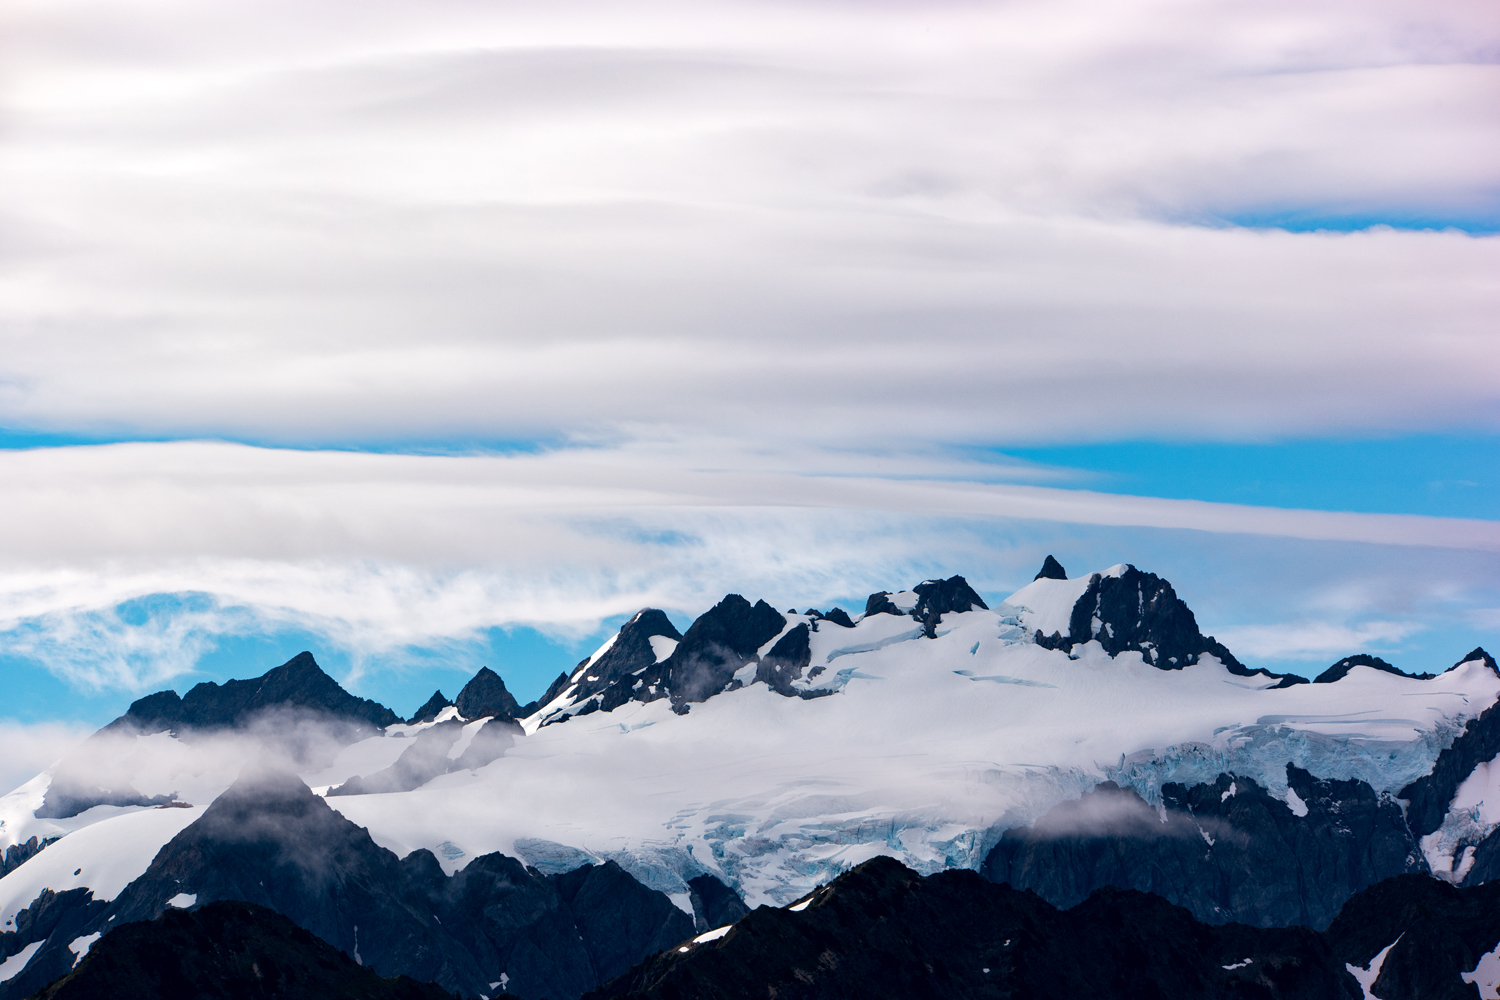 Wasim Muklashy Photography_Olympic National Park_High Divide Loop_042.jpg